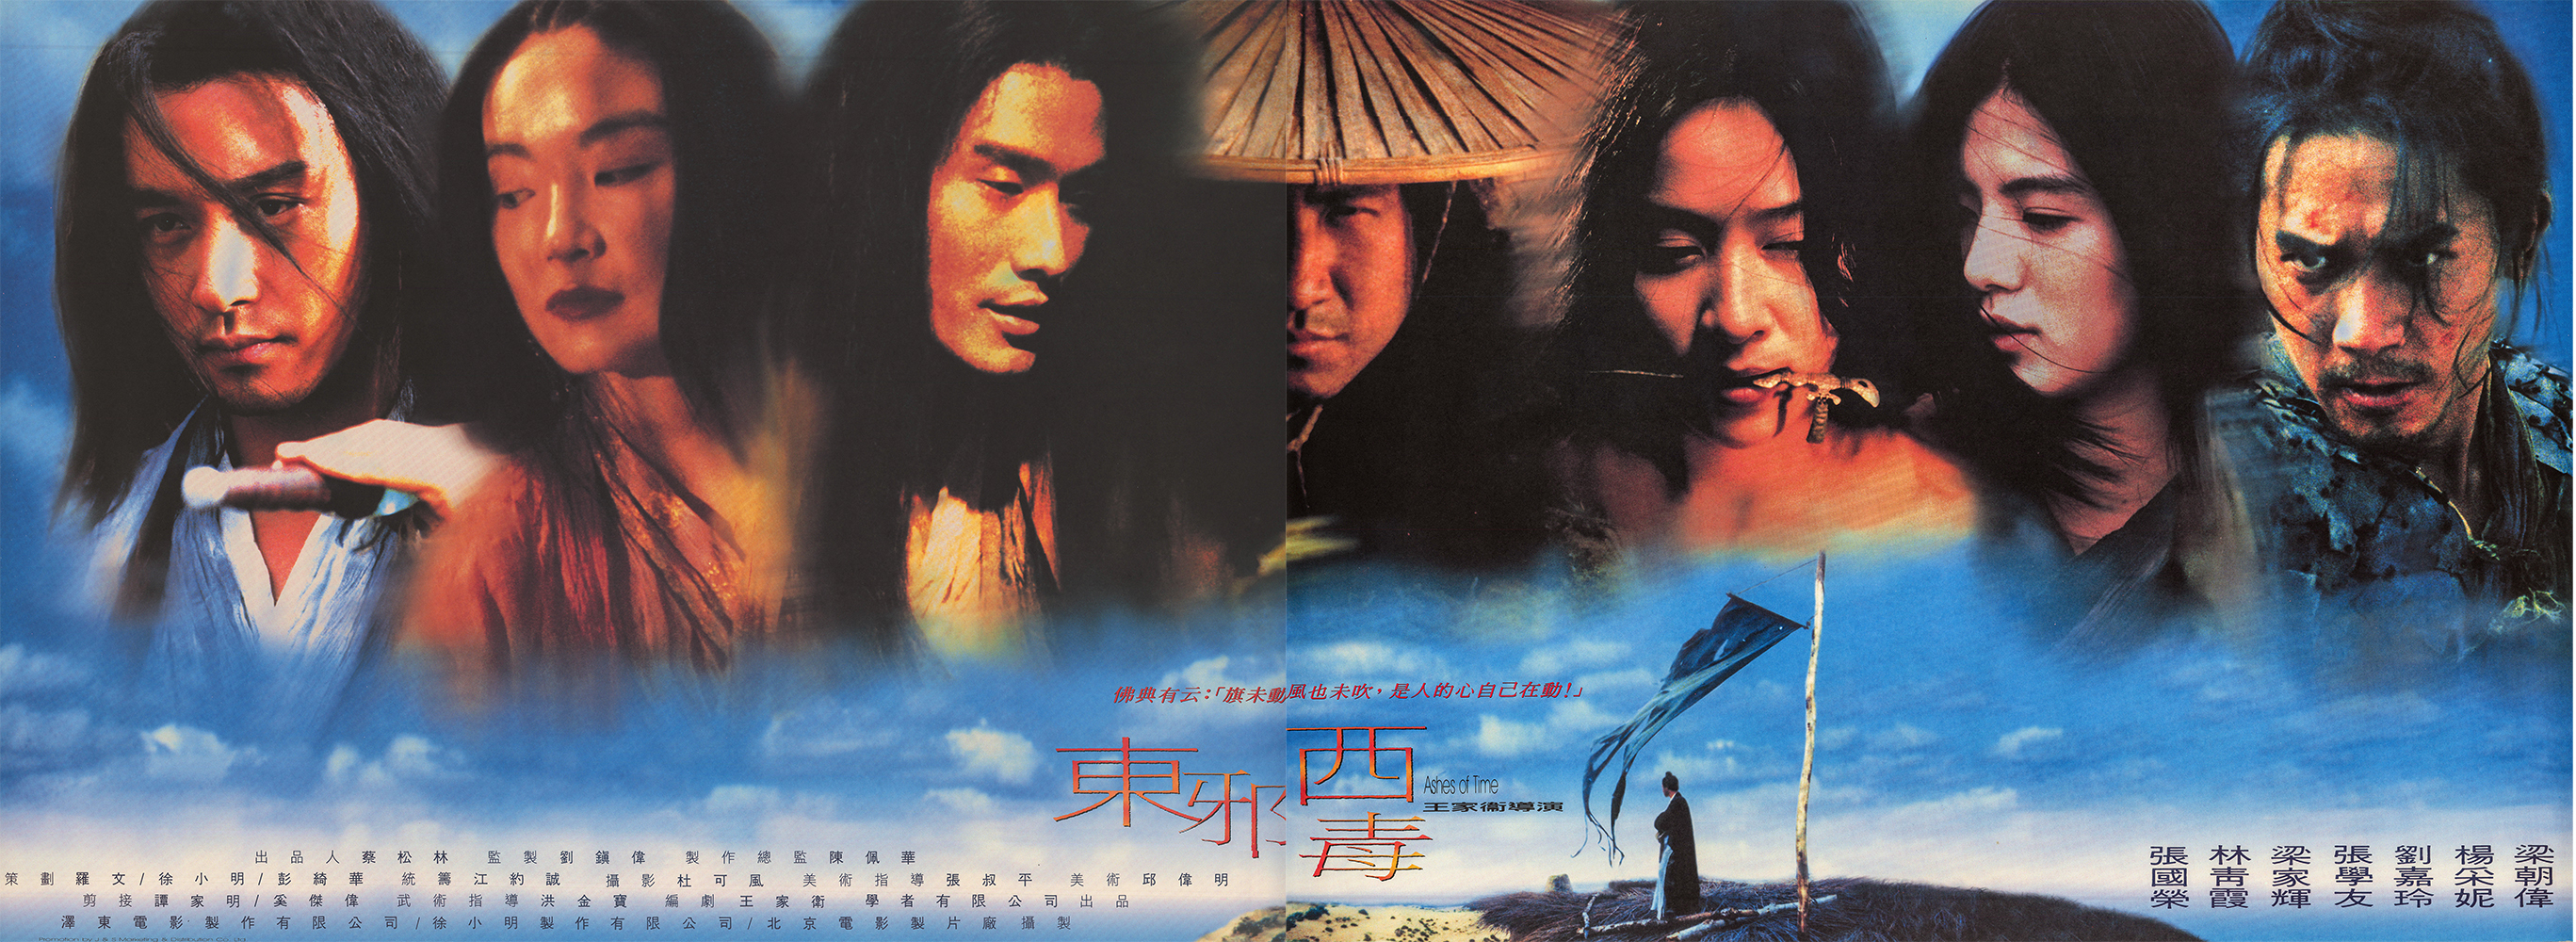 Pictured is a Hong Kong two-sheet promotional poster for the 1994 Wong Kar-Wai film Ashes of Time starring Leslie Cheung as Ou-yang Feng.